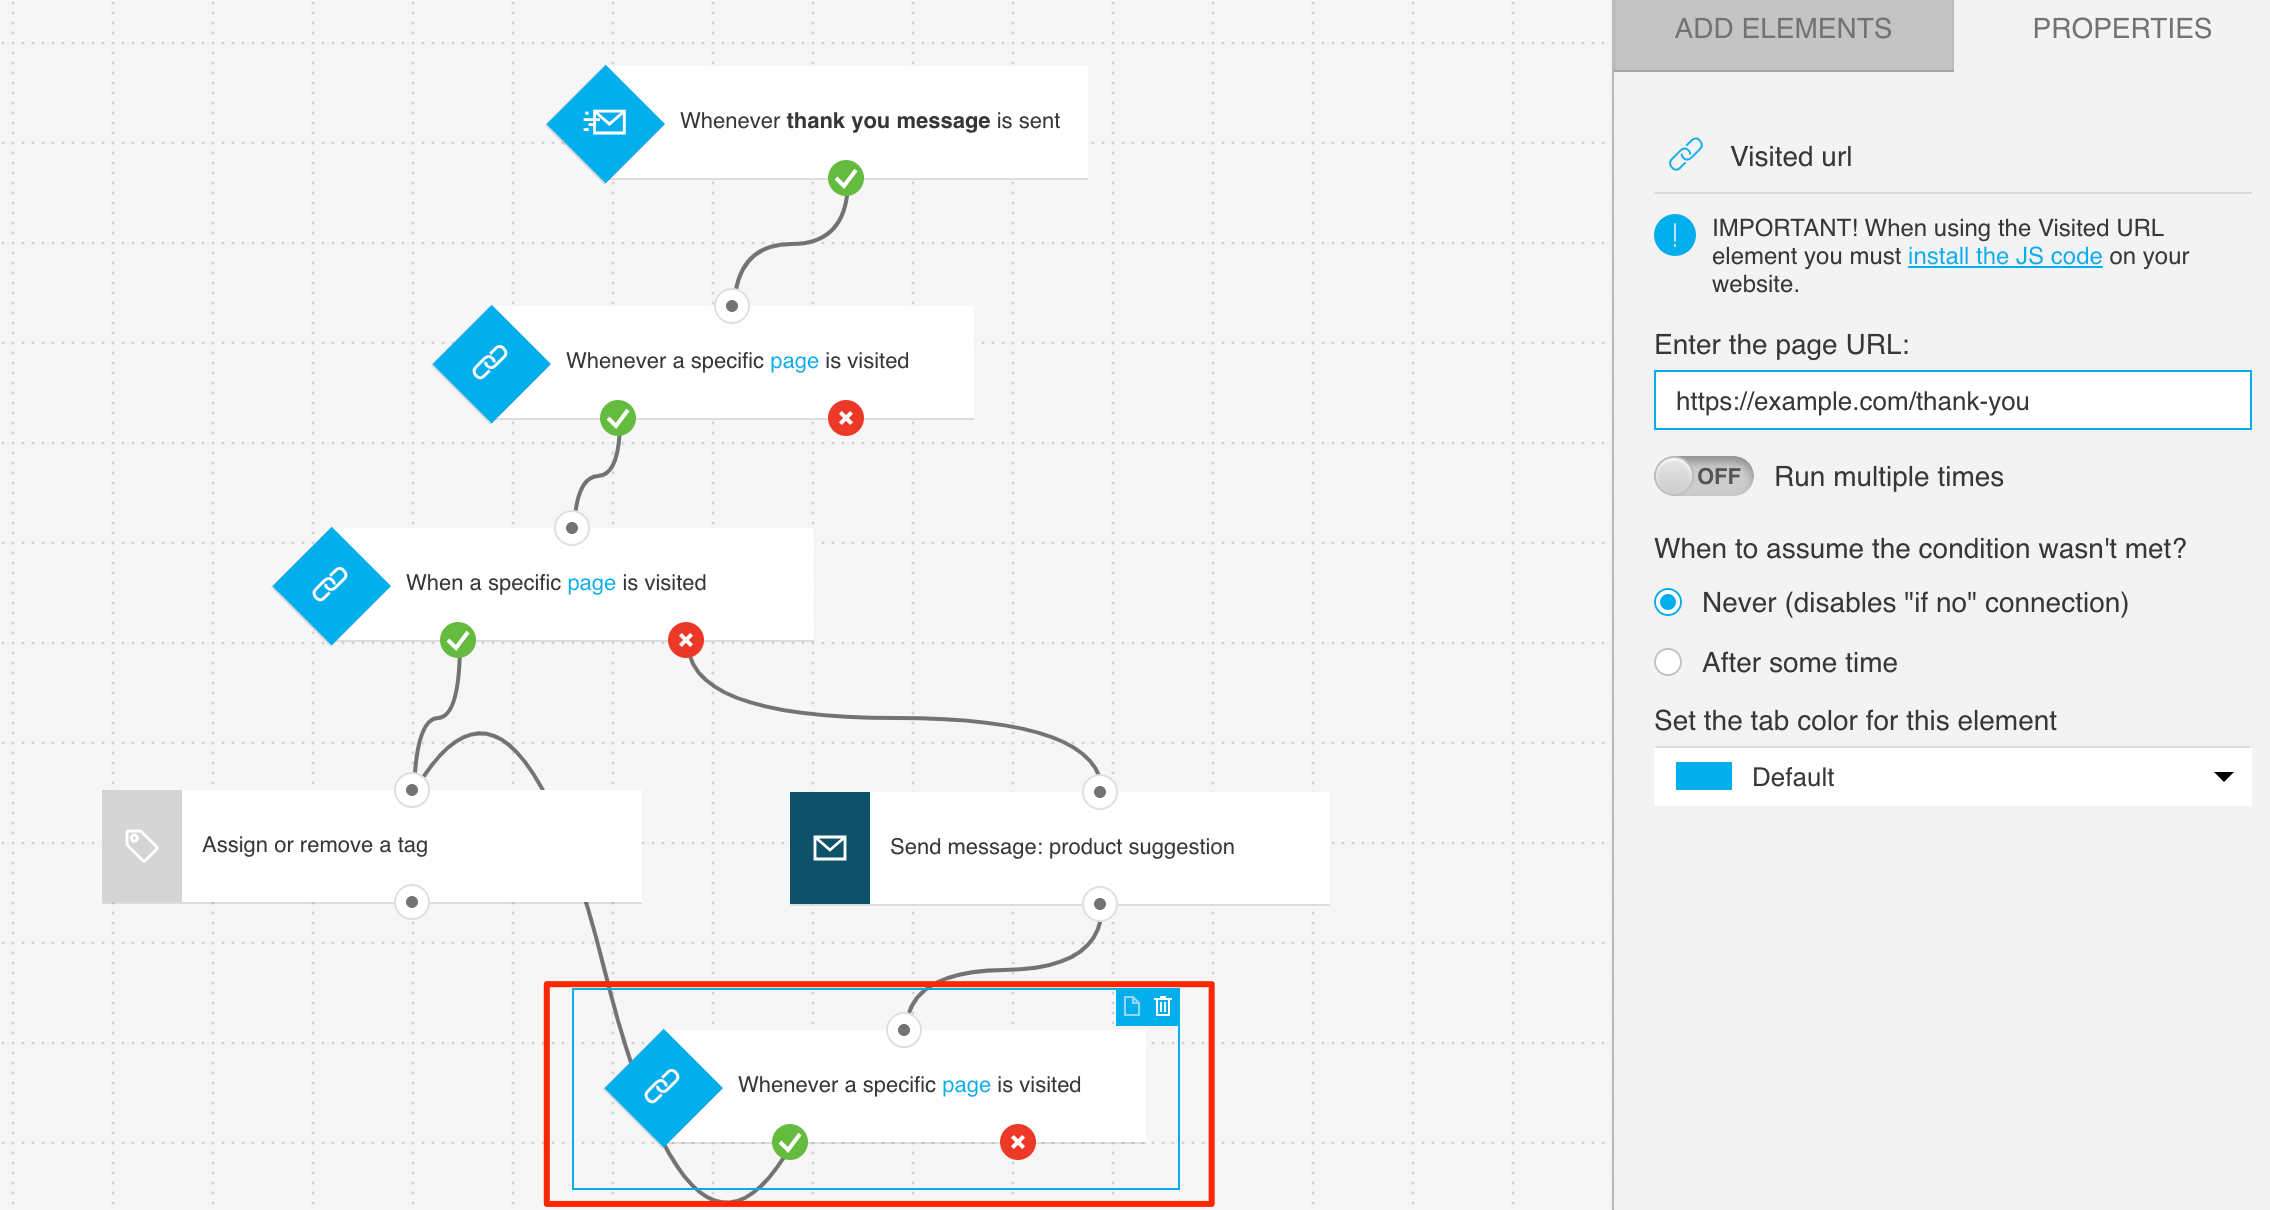 Example configuration of condition tracking conversion from thank you page